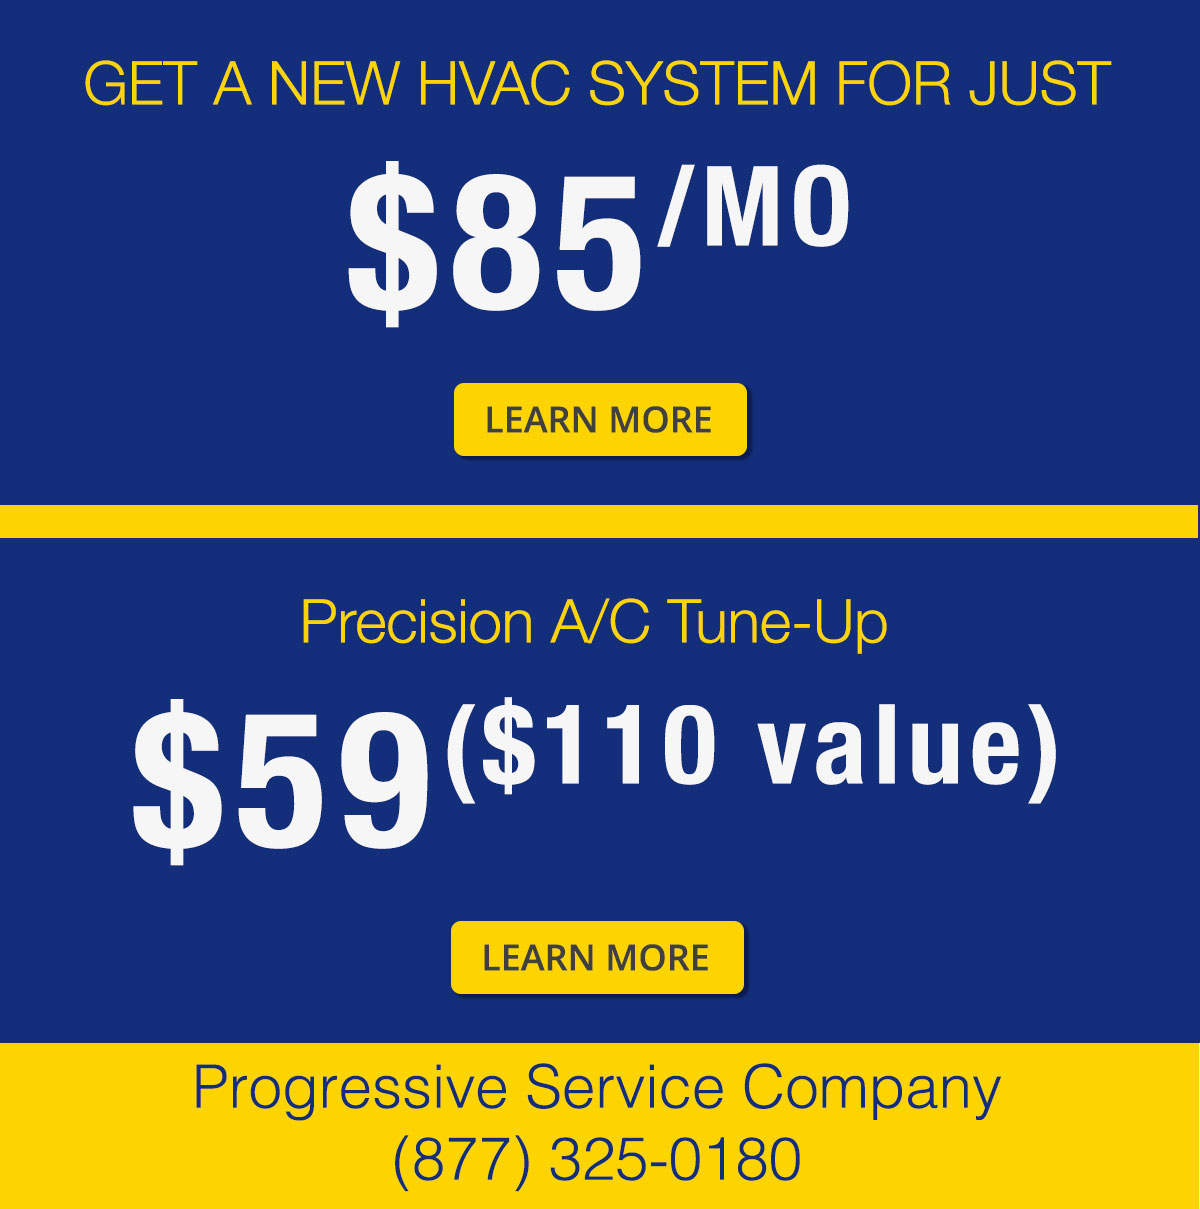 Get a new HVAC System for just $85/month. Precision A/C/ Tune-up for $59 ($110 Value)